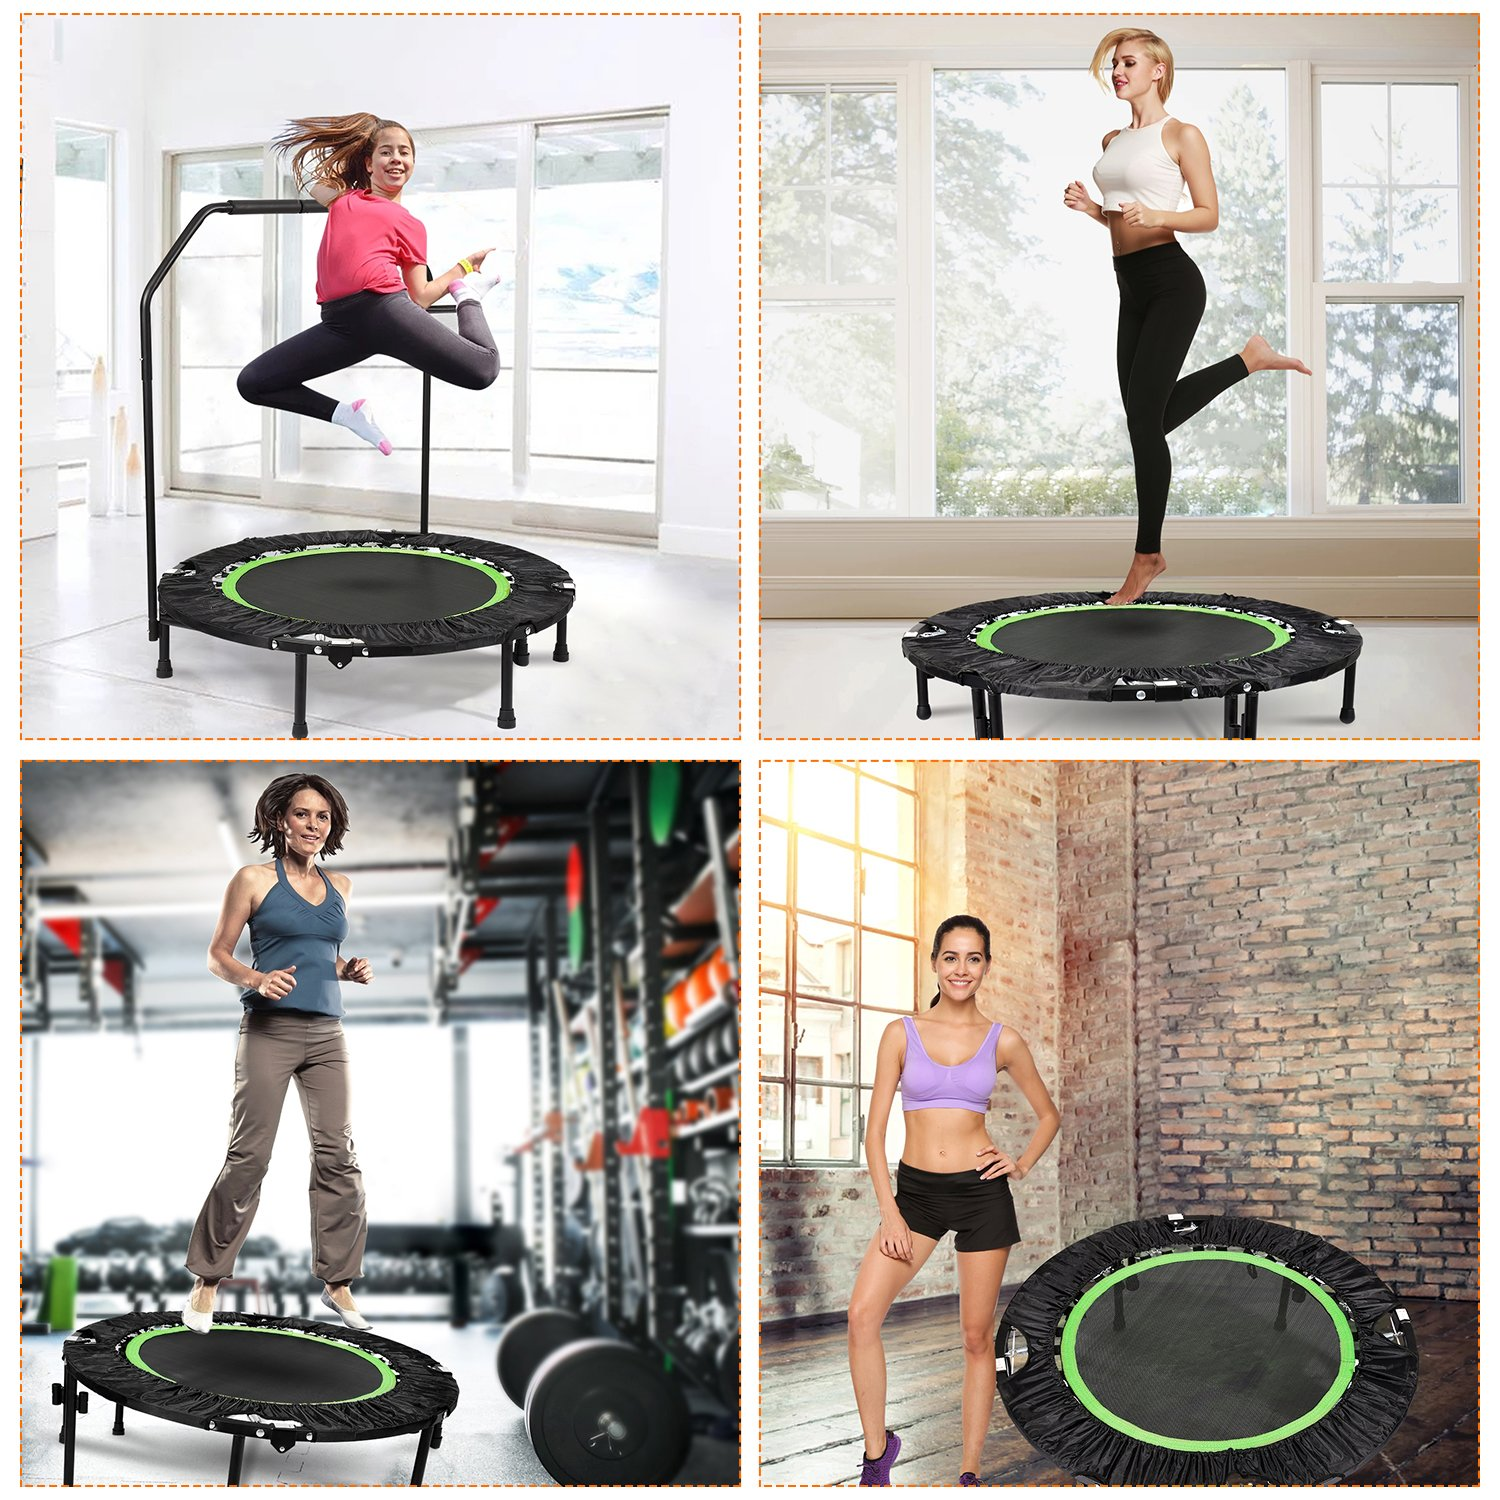 ANCHEER Foldable 40'' Mini Trampoline Rebounder, Max Load 300lbs Rebounder Trampoline Exercise Fitness Trampoline for Indoor/Garden/Workout Cardio by ANCHEER (Image #2)